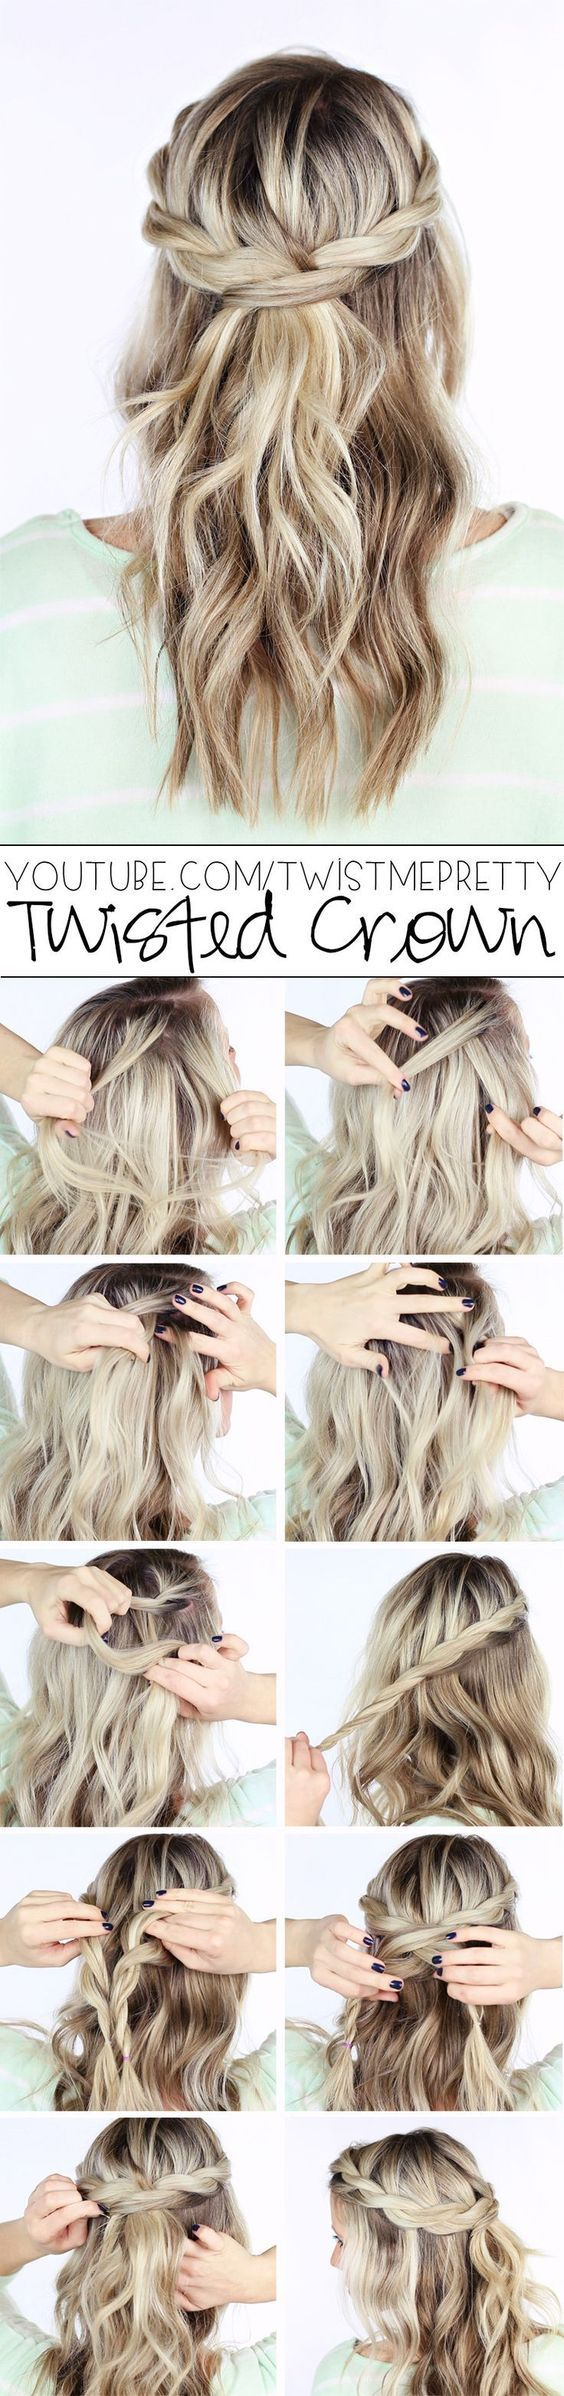 14 Simply Gorgeous Hair Tutorials for Weddings, Prom, & Fancy Affairs | How Does She